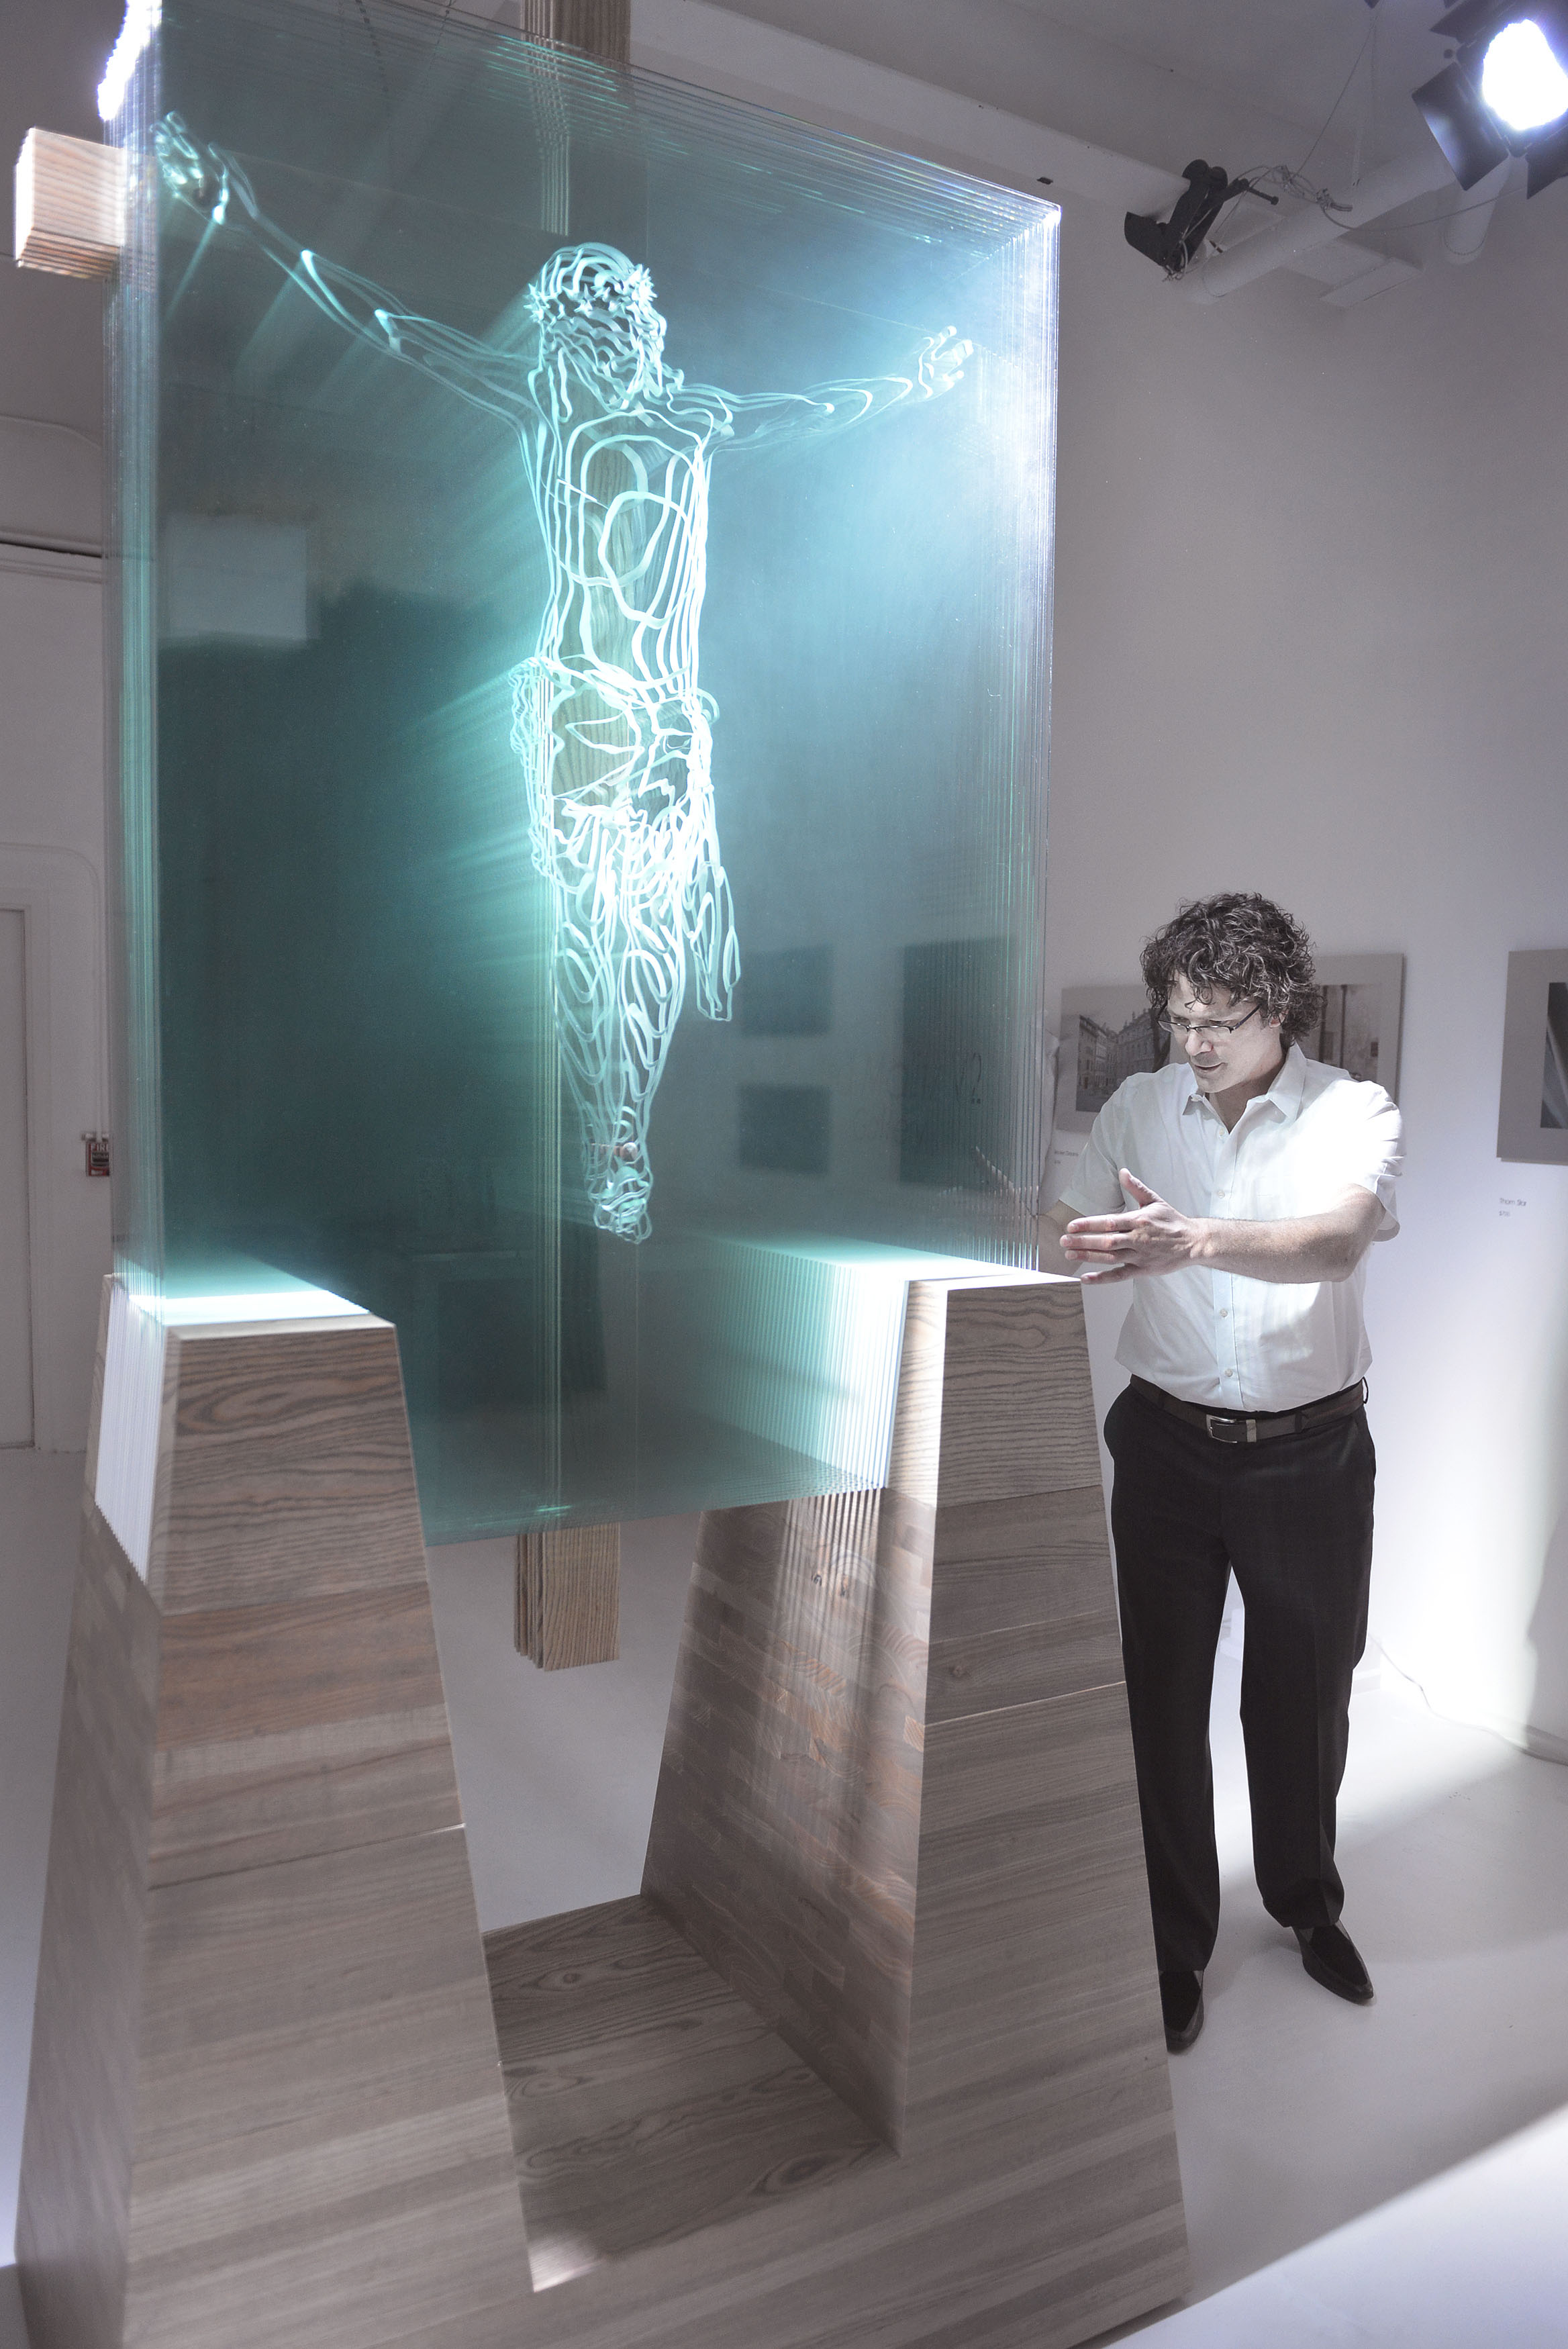 Front view showing sculpted glass and halo of light along the left side of His body.